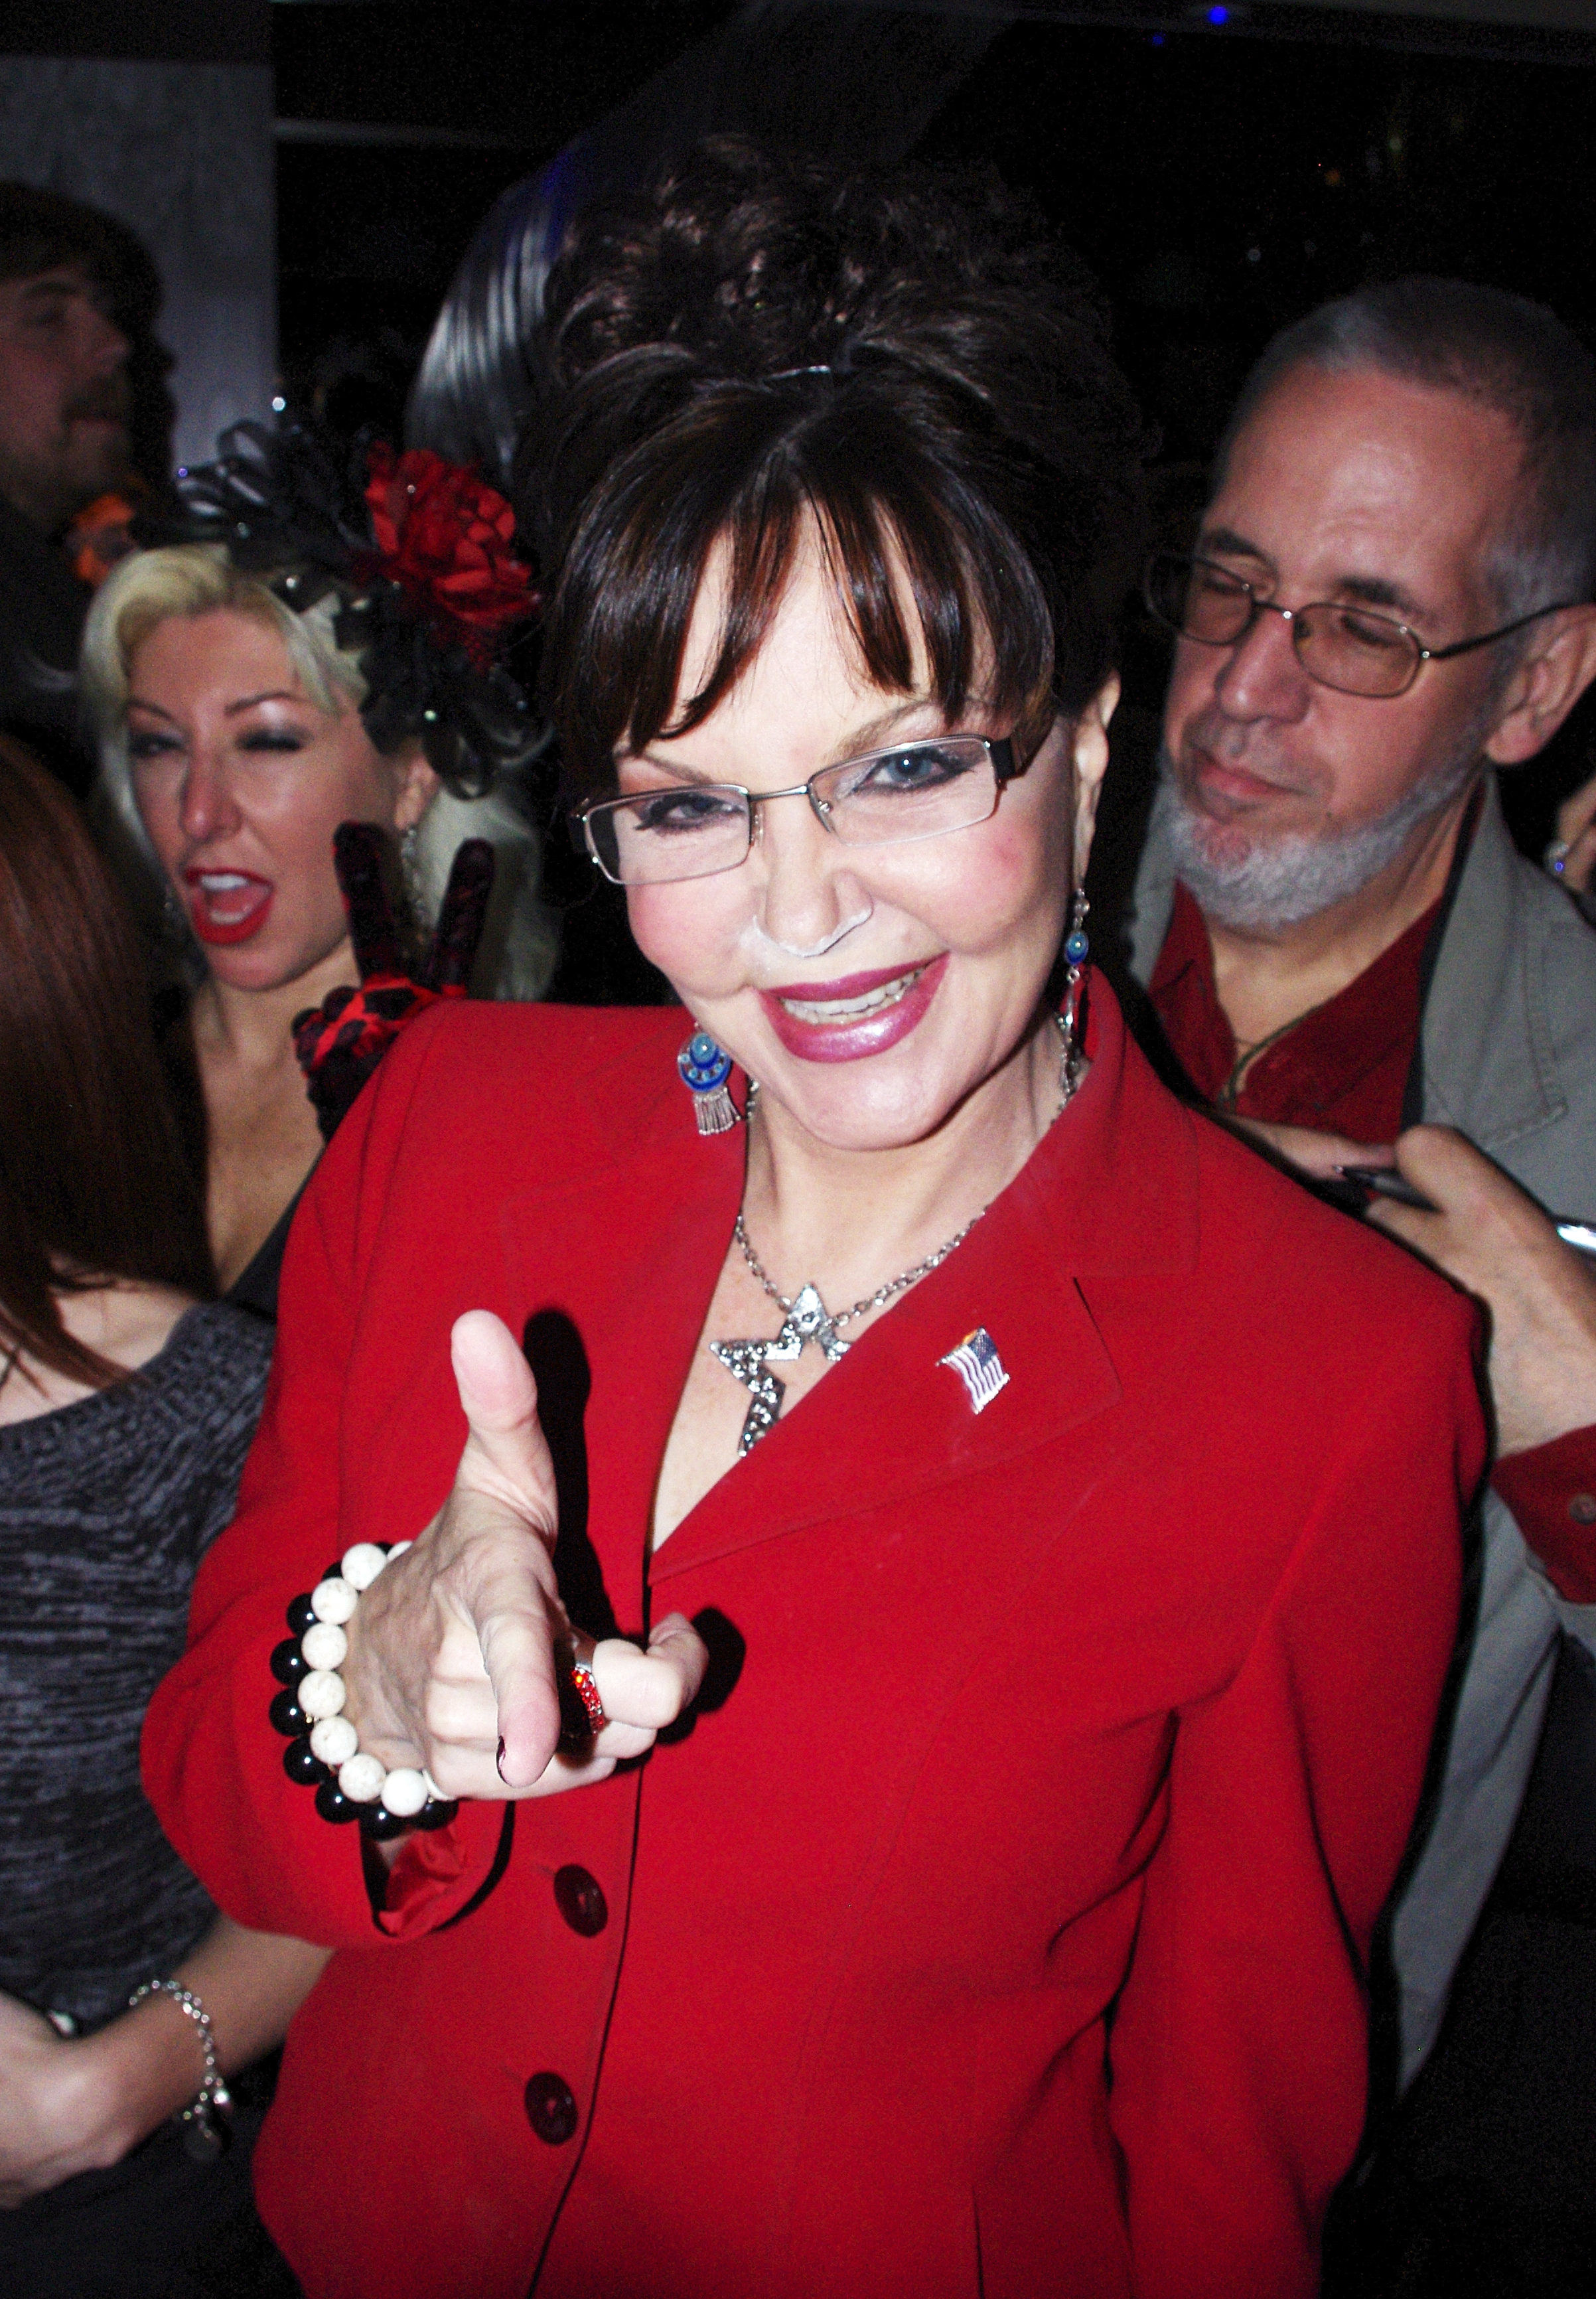 Advise sarah palin adult remarkable, the